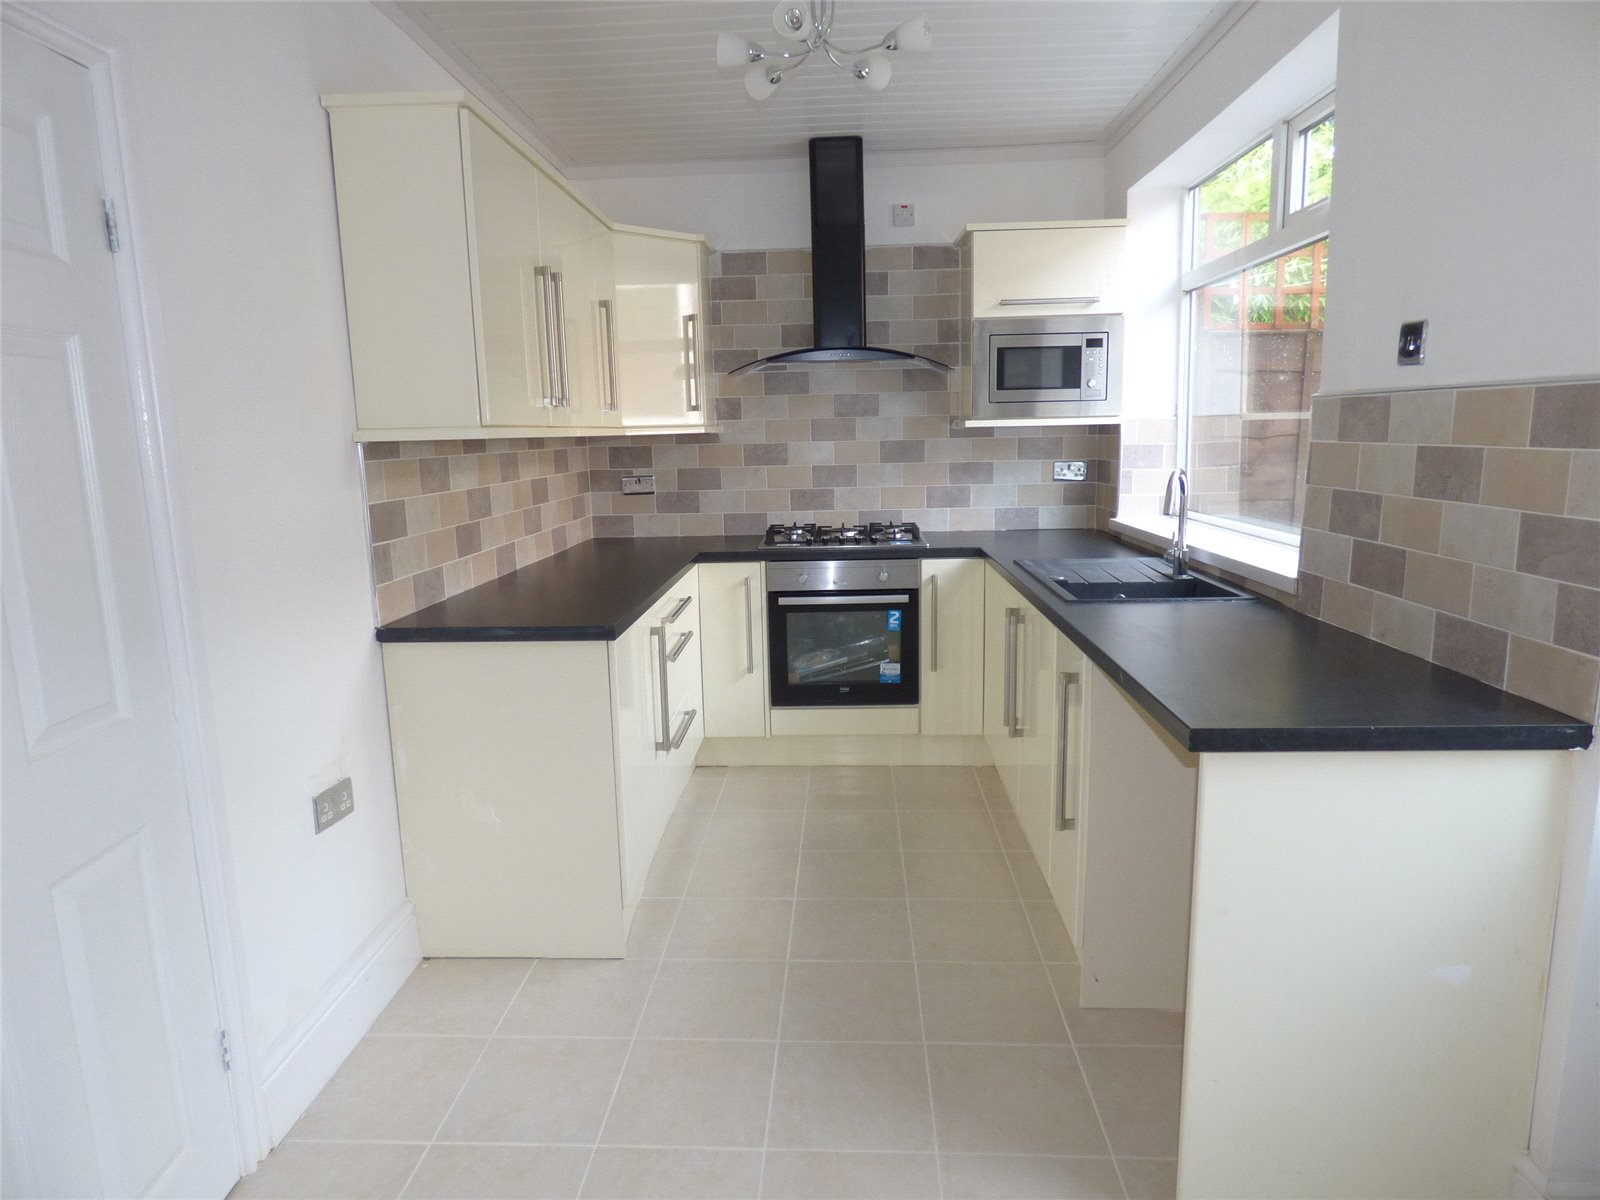 3 Bedrooms Terraced House for sale in New Earth Street, Oldham, Greater Manchester, OL4